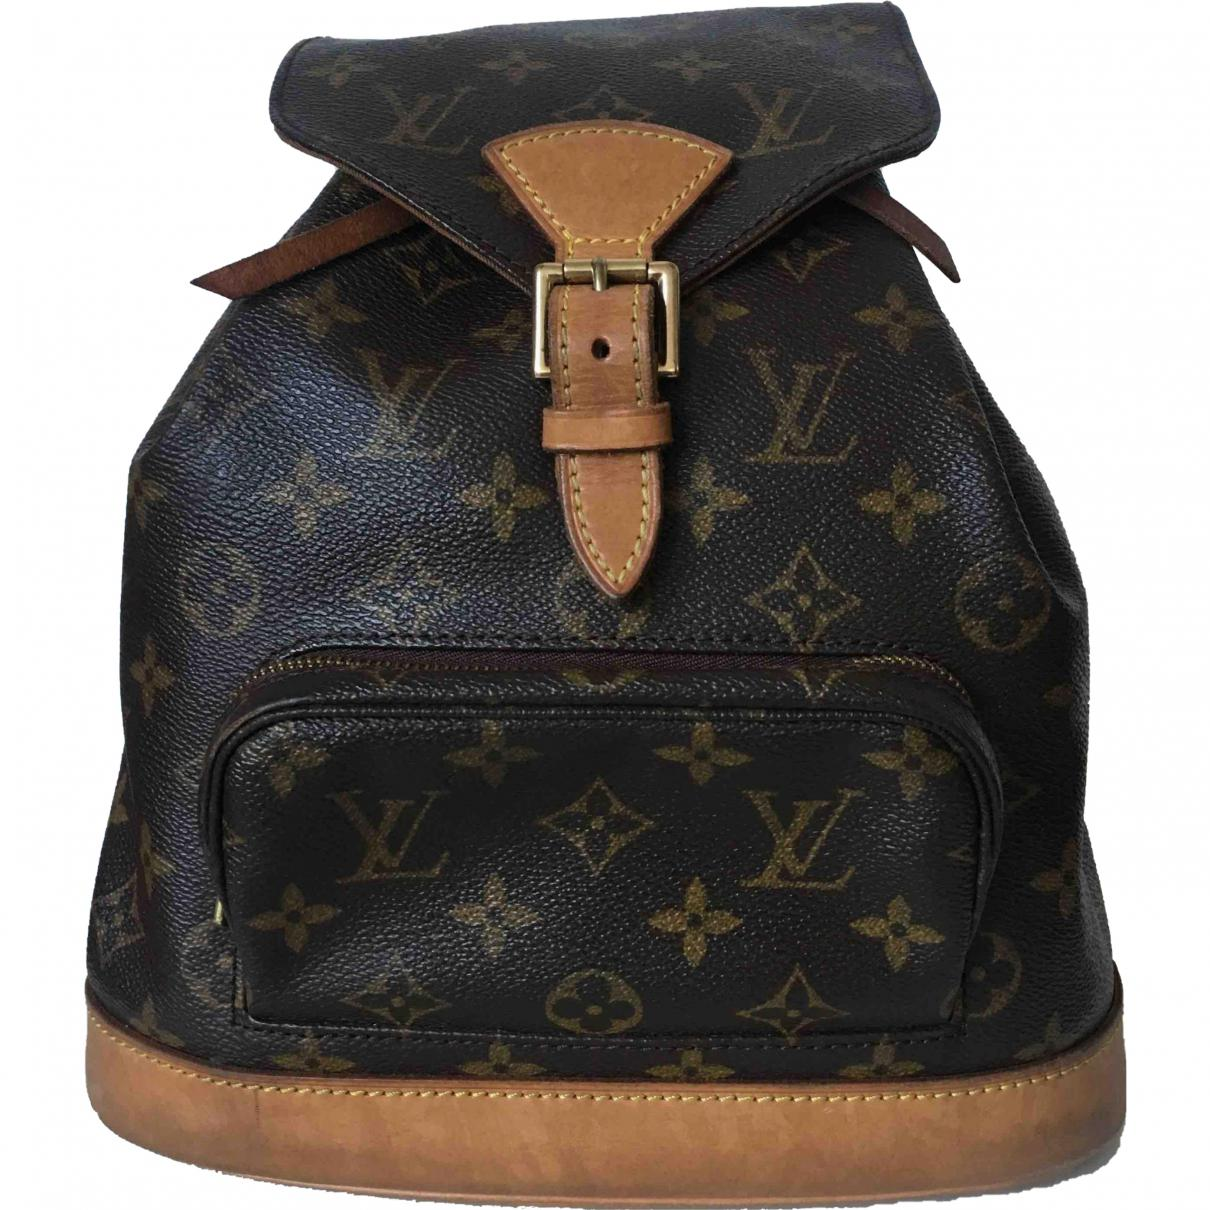 Lyst - Louis Vuitton Montsouris Cloth Backpack in Brown e42bcd023eb